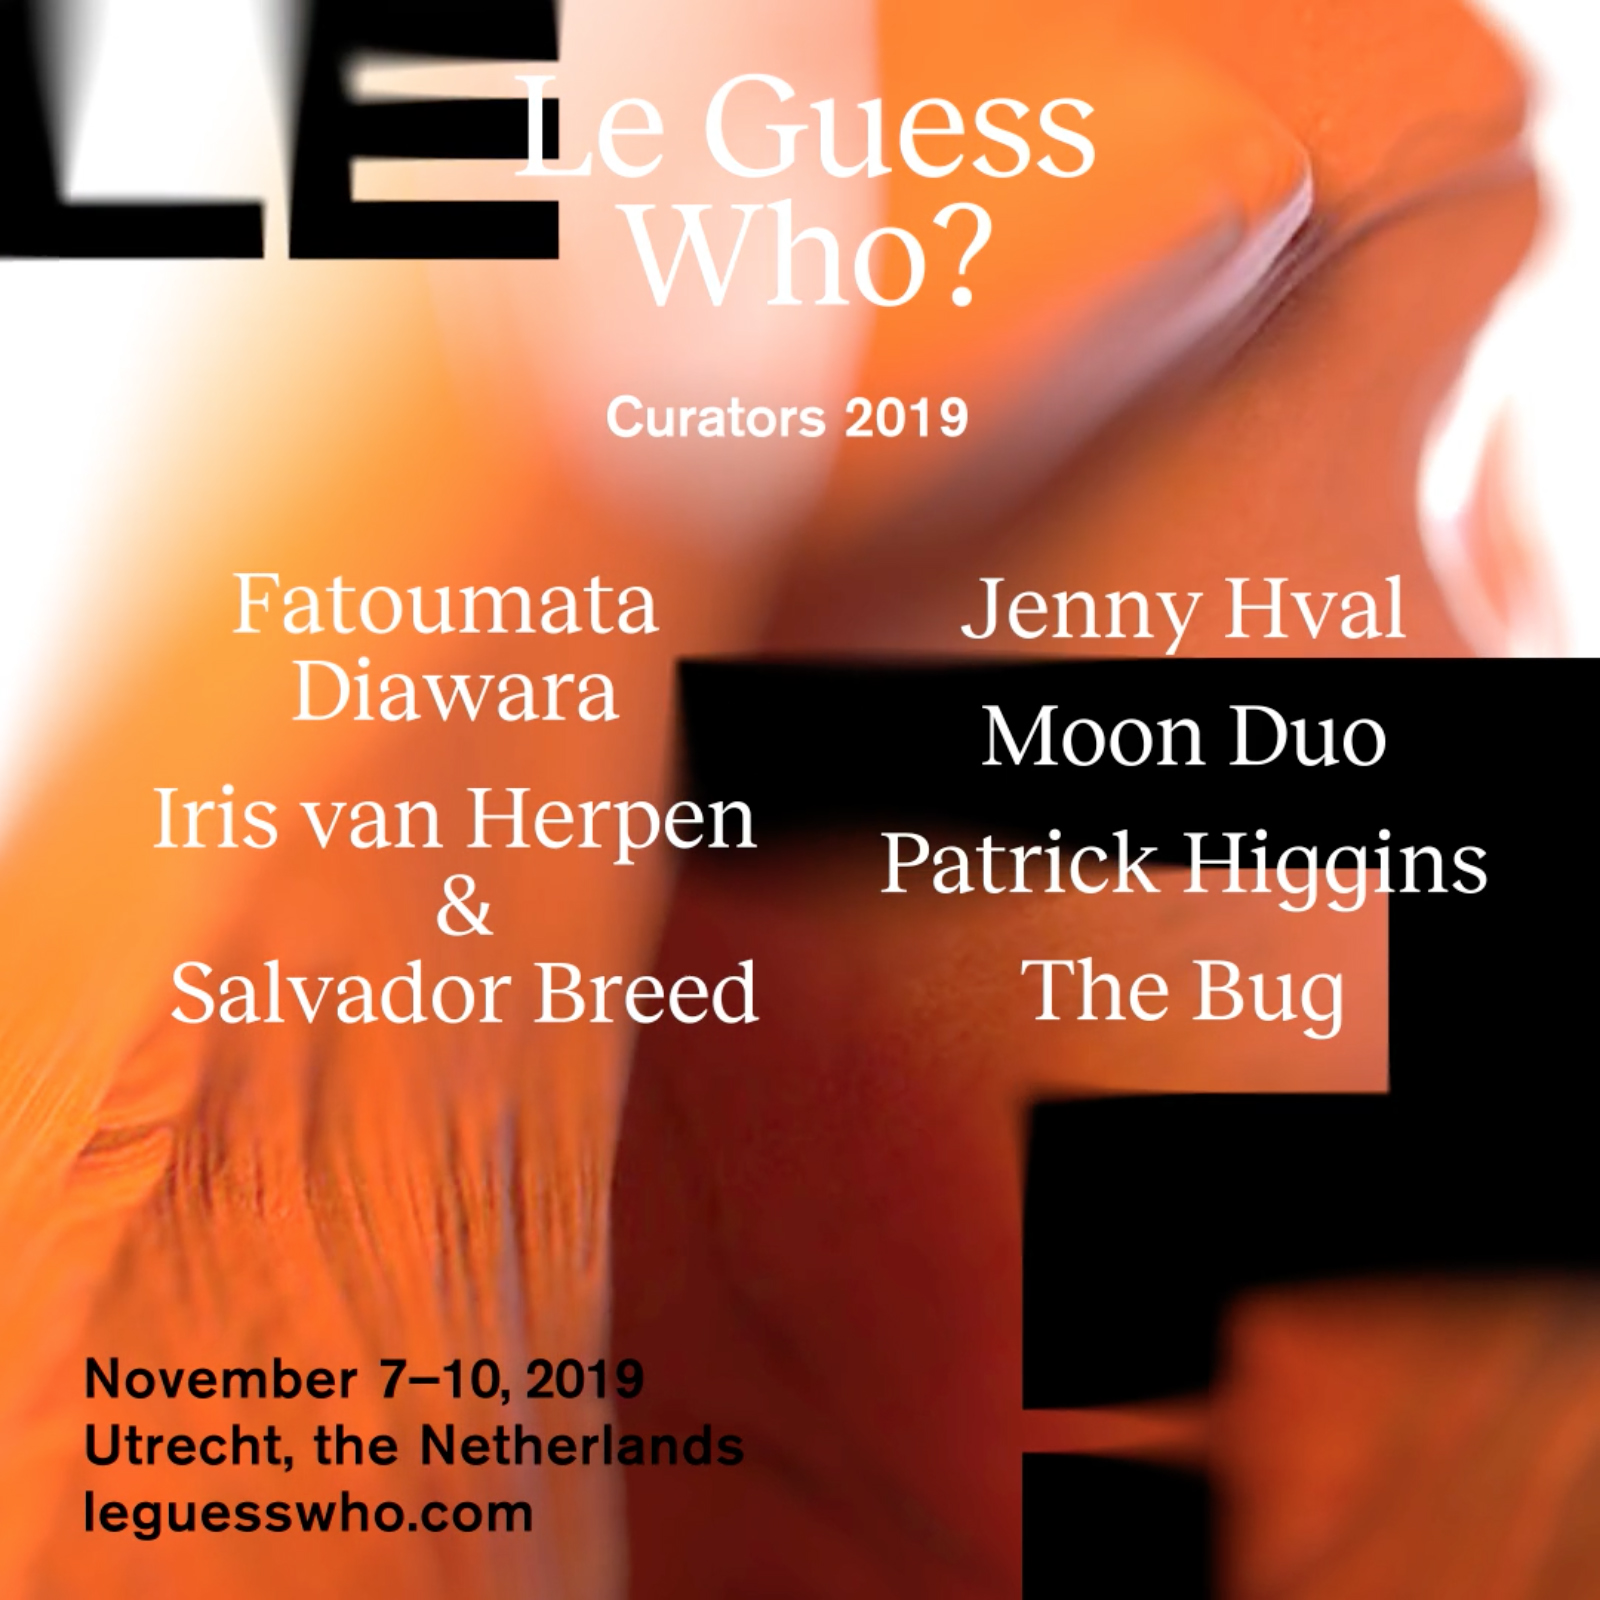 Revealing the guest curators for Le Guess Who? 2019